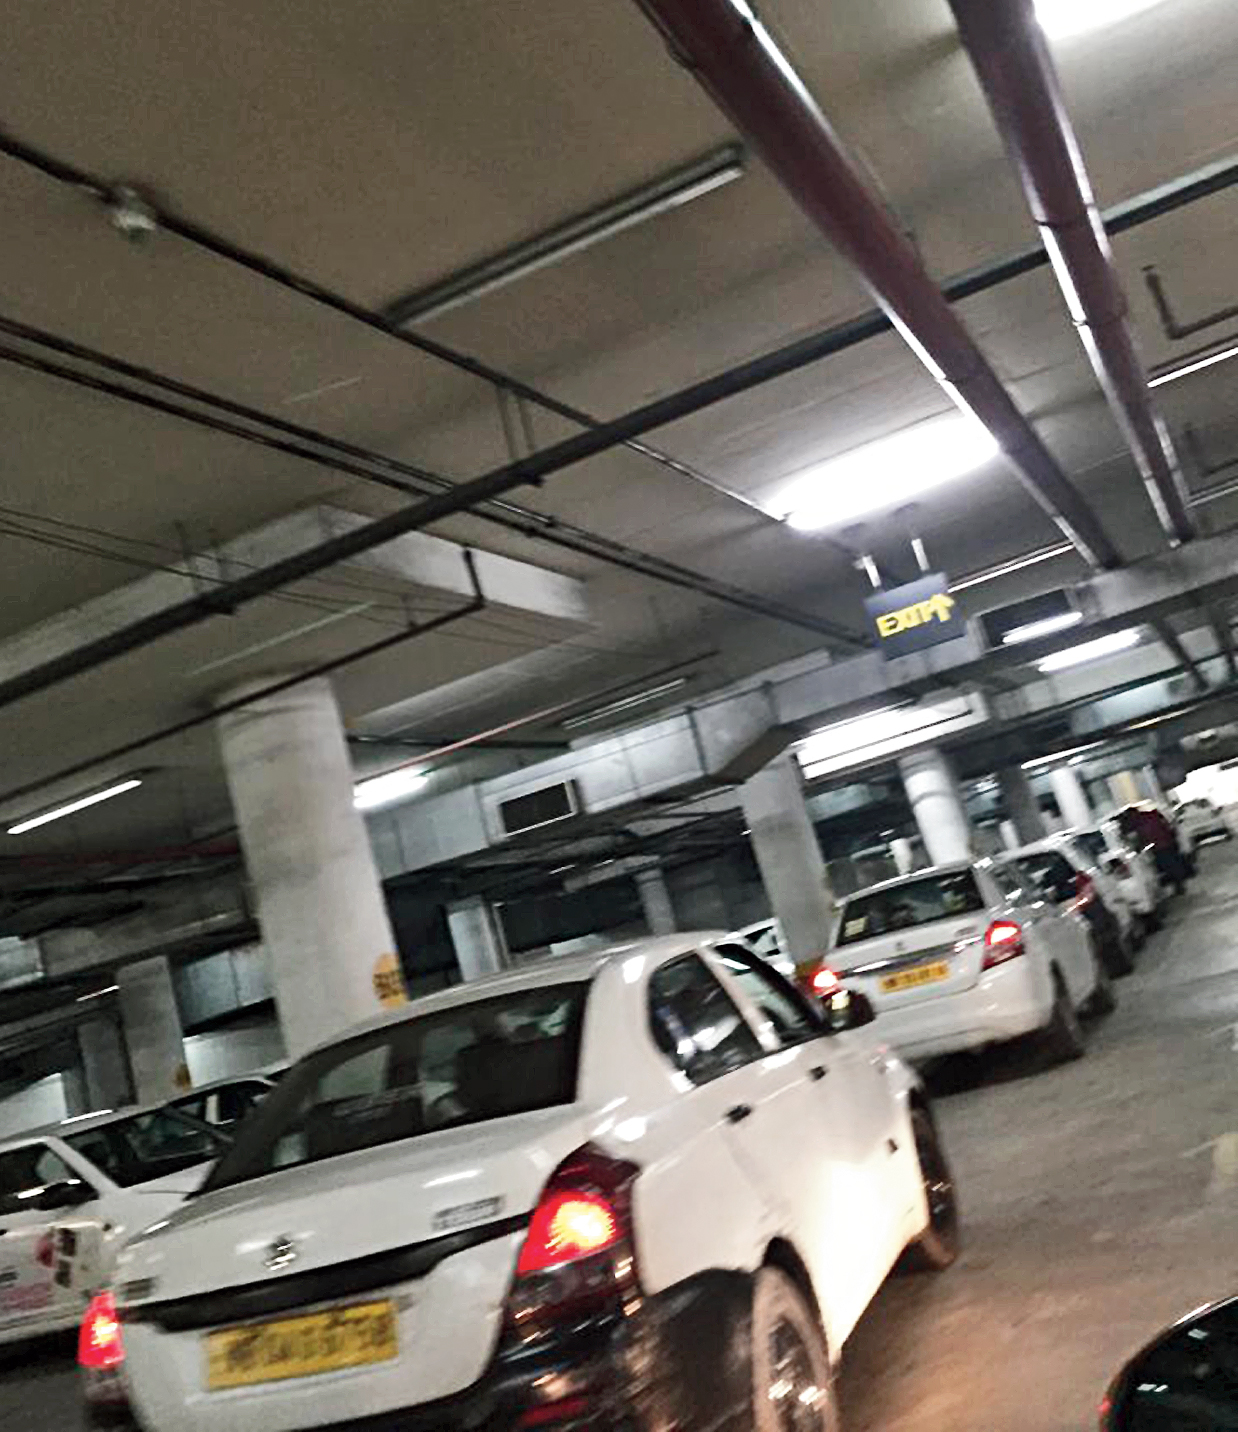 A long queue of cars inside the parking lot on their way to the arrival area of the city airport